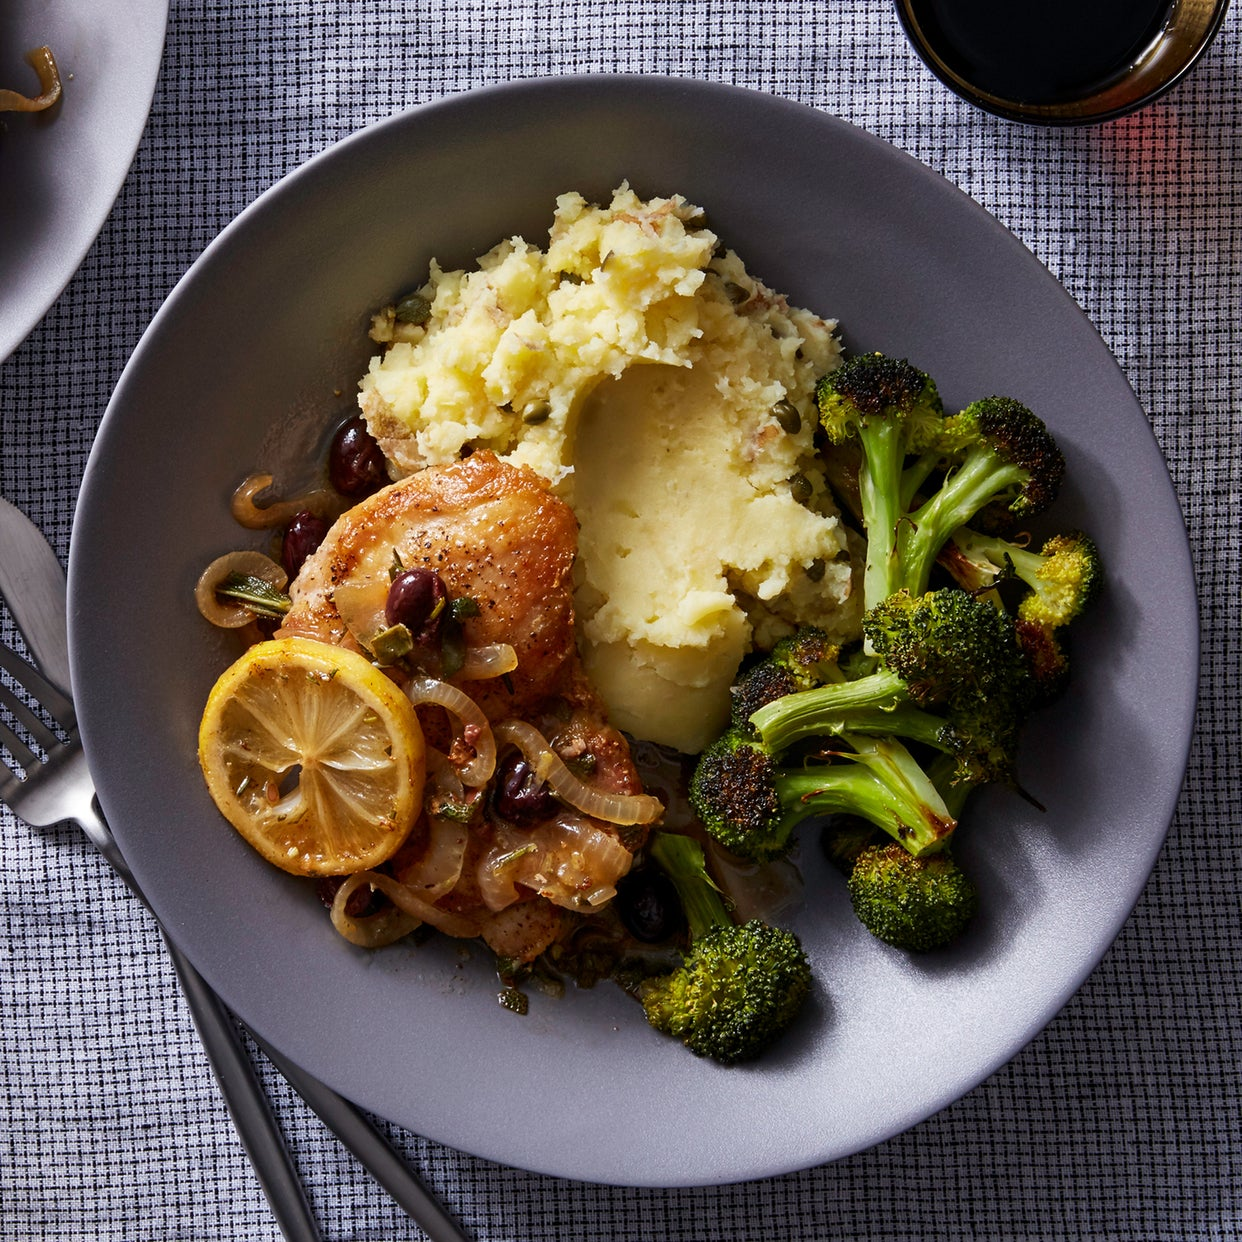 Braised Chicken & Smashed Potatoes with Olives, Herbs, & Broccoli